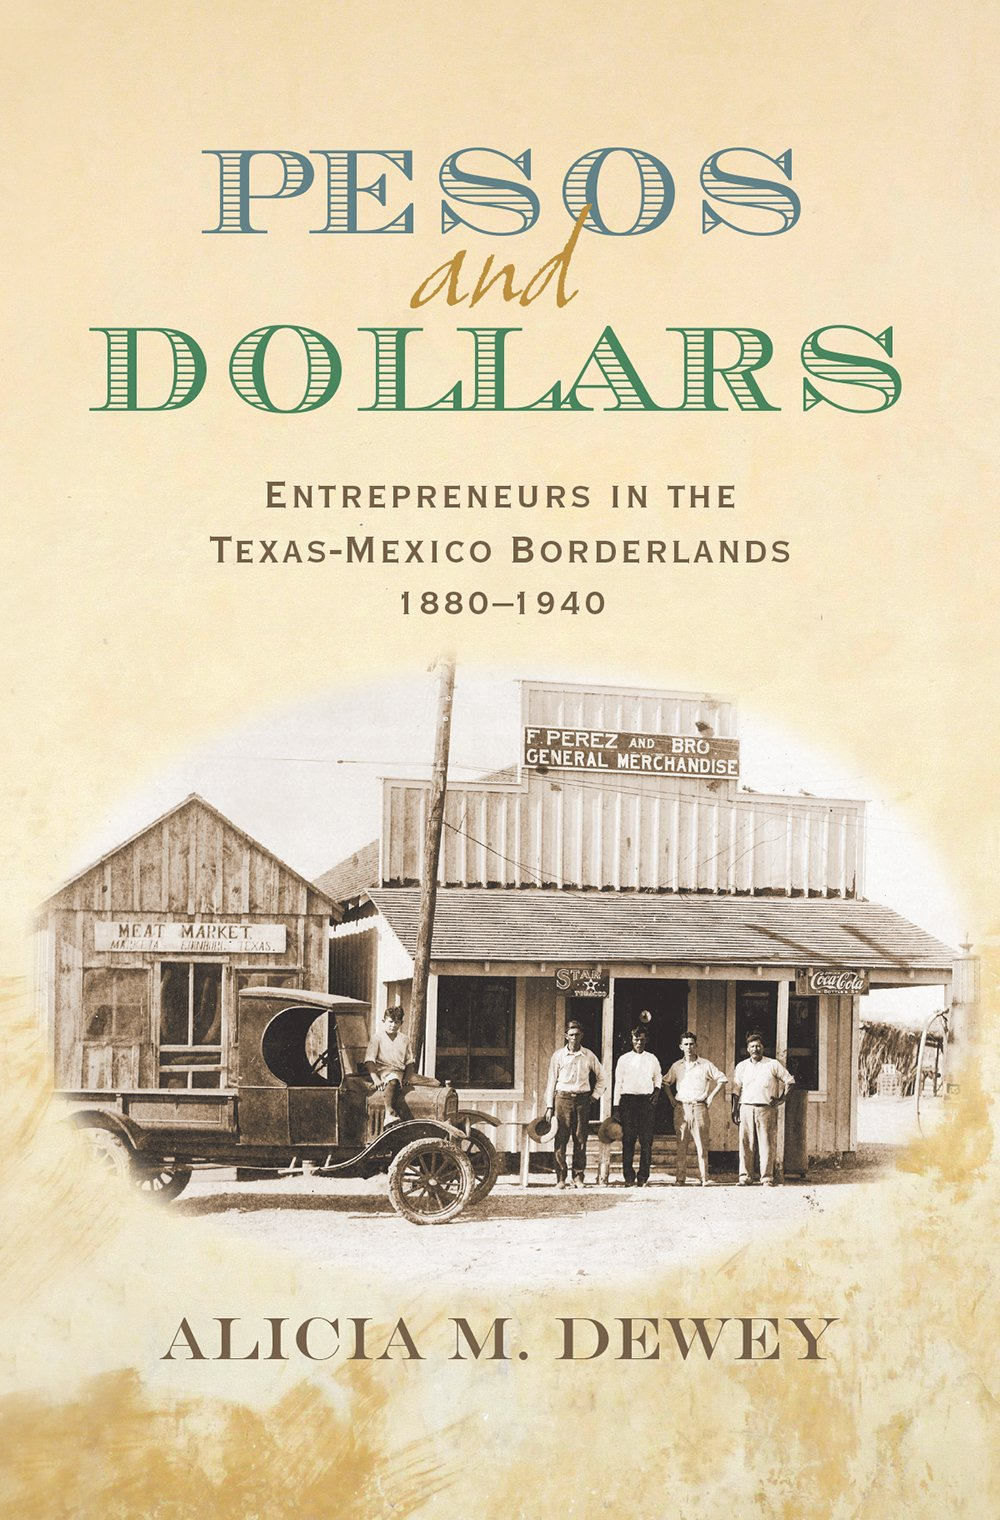 Download Pesos and Dollars: Entrepreneurs in the Texas-Mexico Borderlands, 1880-1940 (Connecting the Greater West Series) ebook